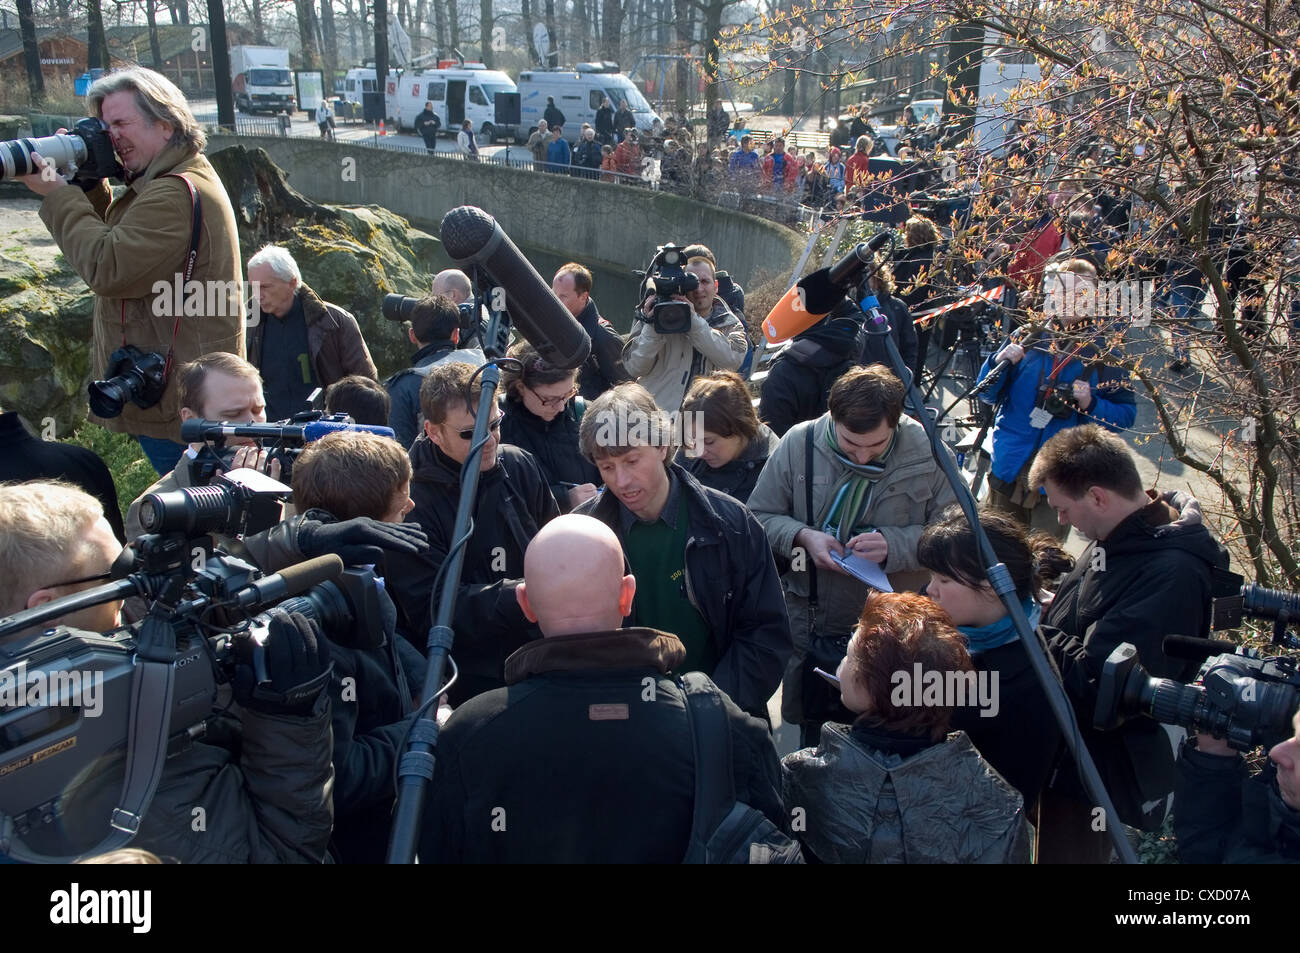 Berlin, media frenzy at the zoo - Stock Image